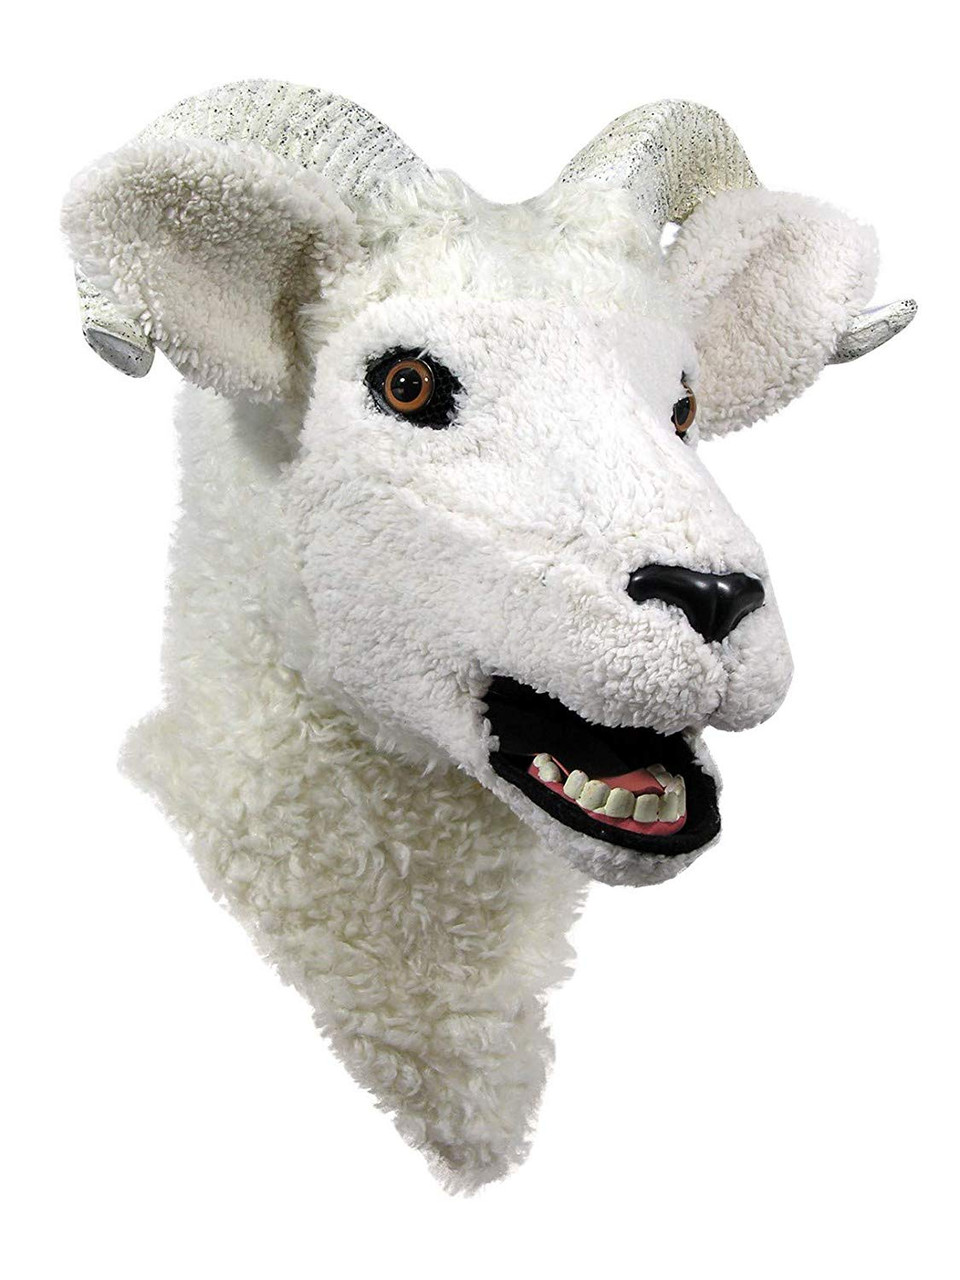 Ram Lamb Mask Moving Mouth Animal Fancy Dress Halloween Adult Costume Accessory